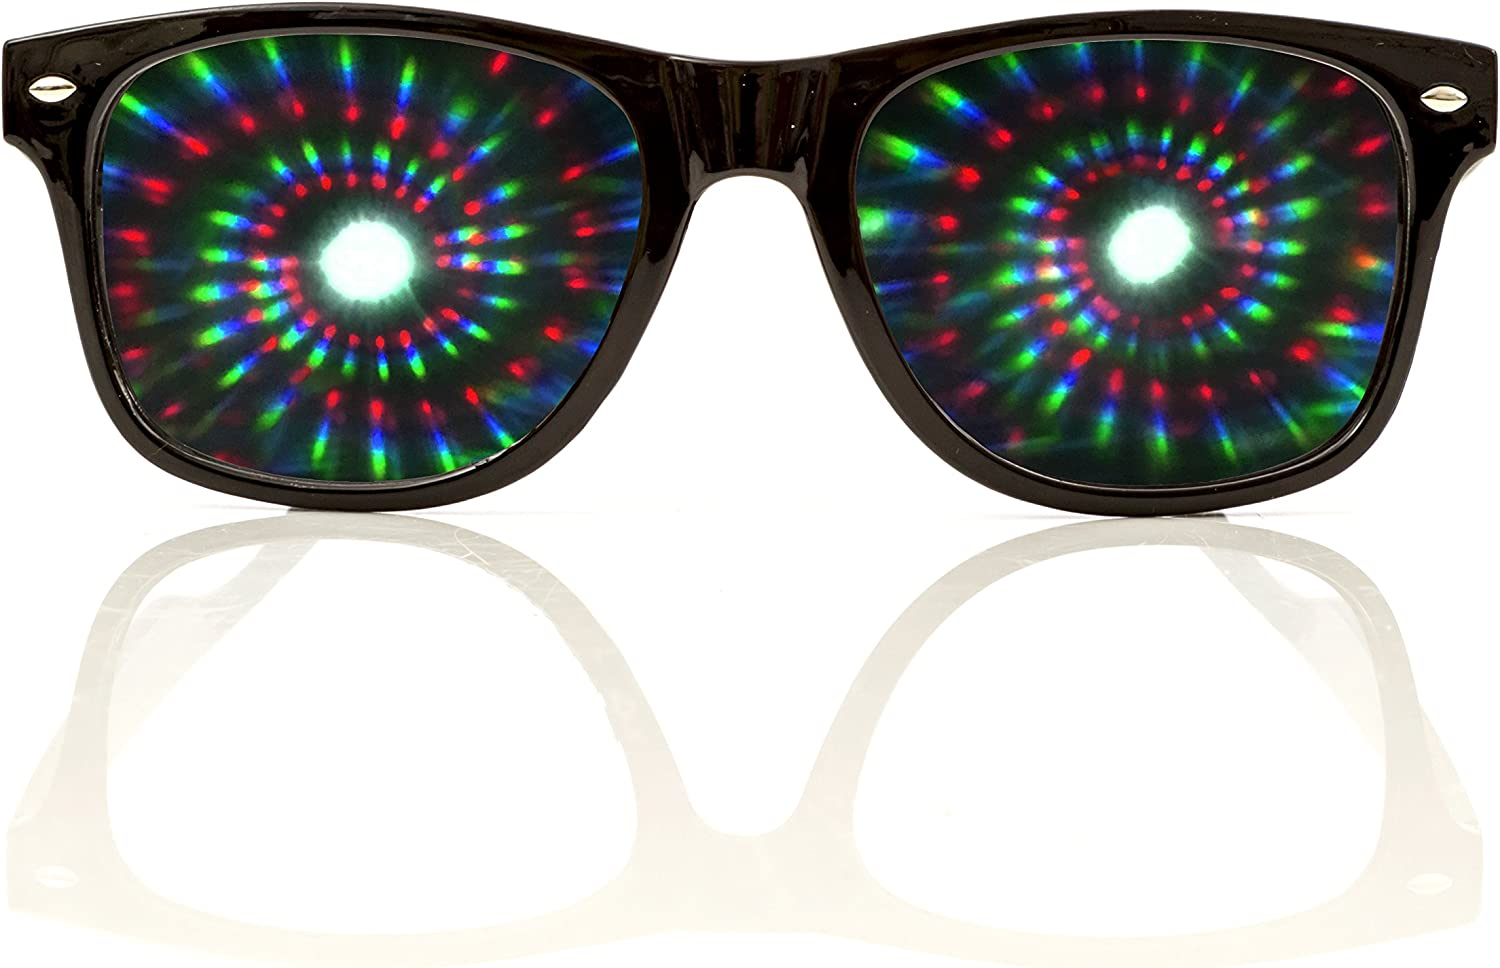 Spiral Diffraction Glasses Sale SALE% OFF - for Directly managed store Raves More Festivals and